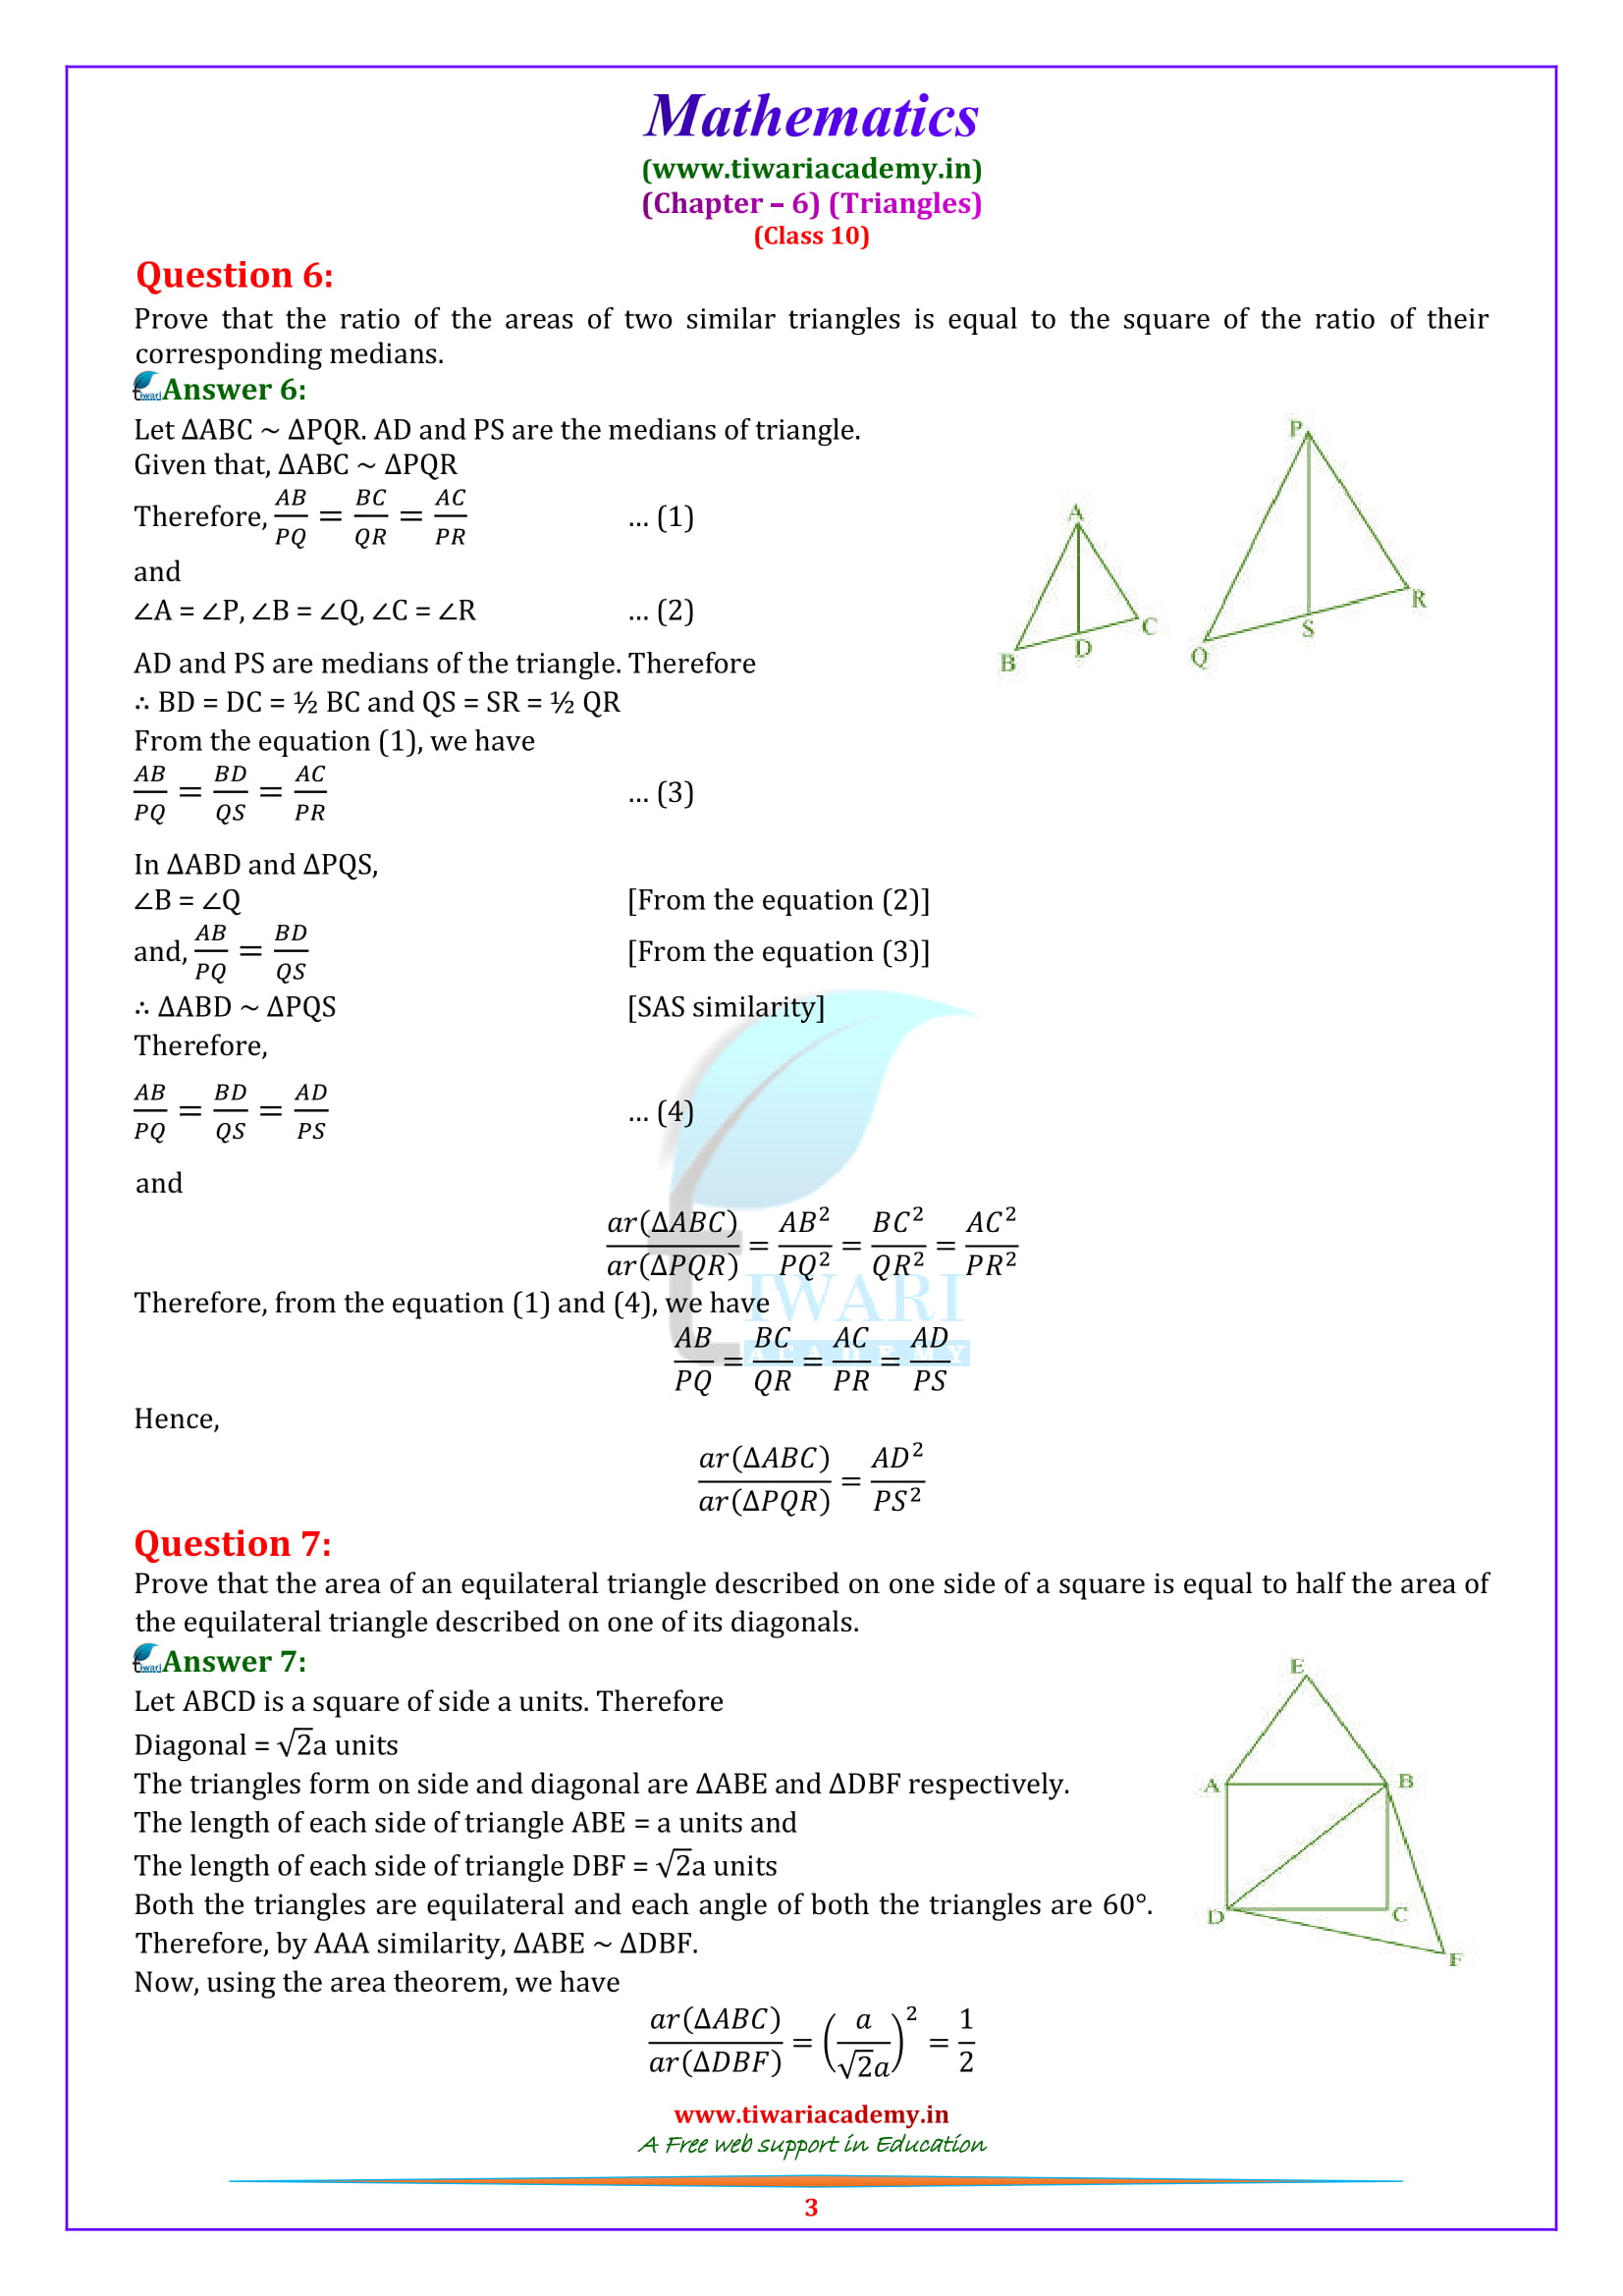 10 Maths Exercise 6.4 solutions for up board high school